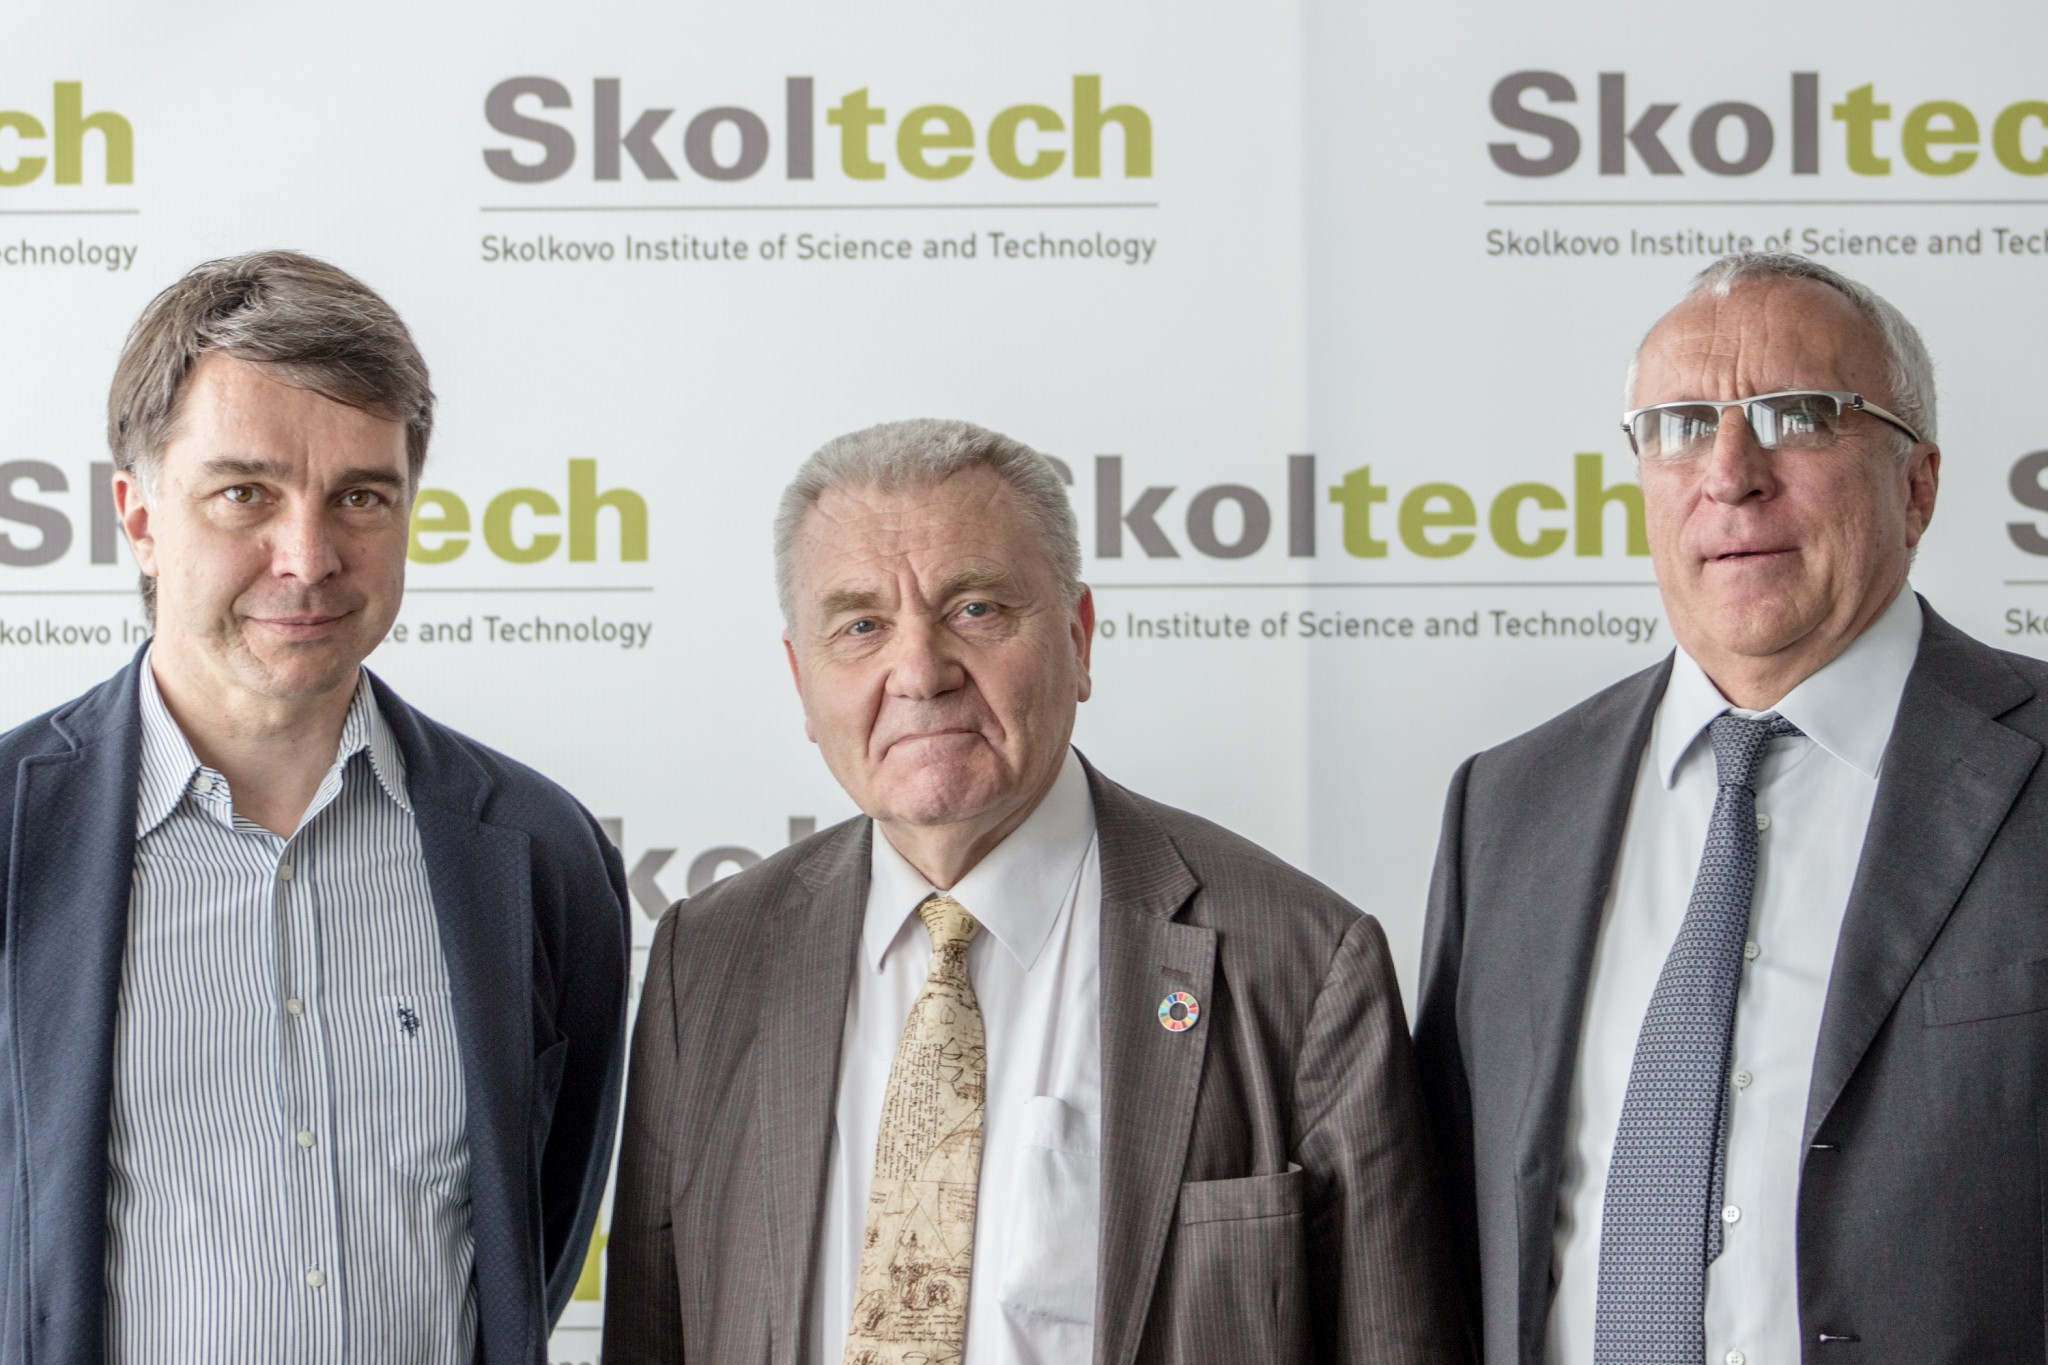 From left: Stanislav Smirnov, Jean-Pierre Bourguignon and Alexander Kuleshov. Photo: Tim Sabiroff // Skoltech.